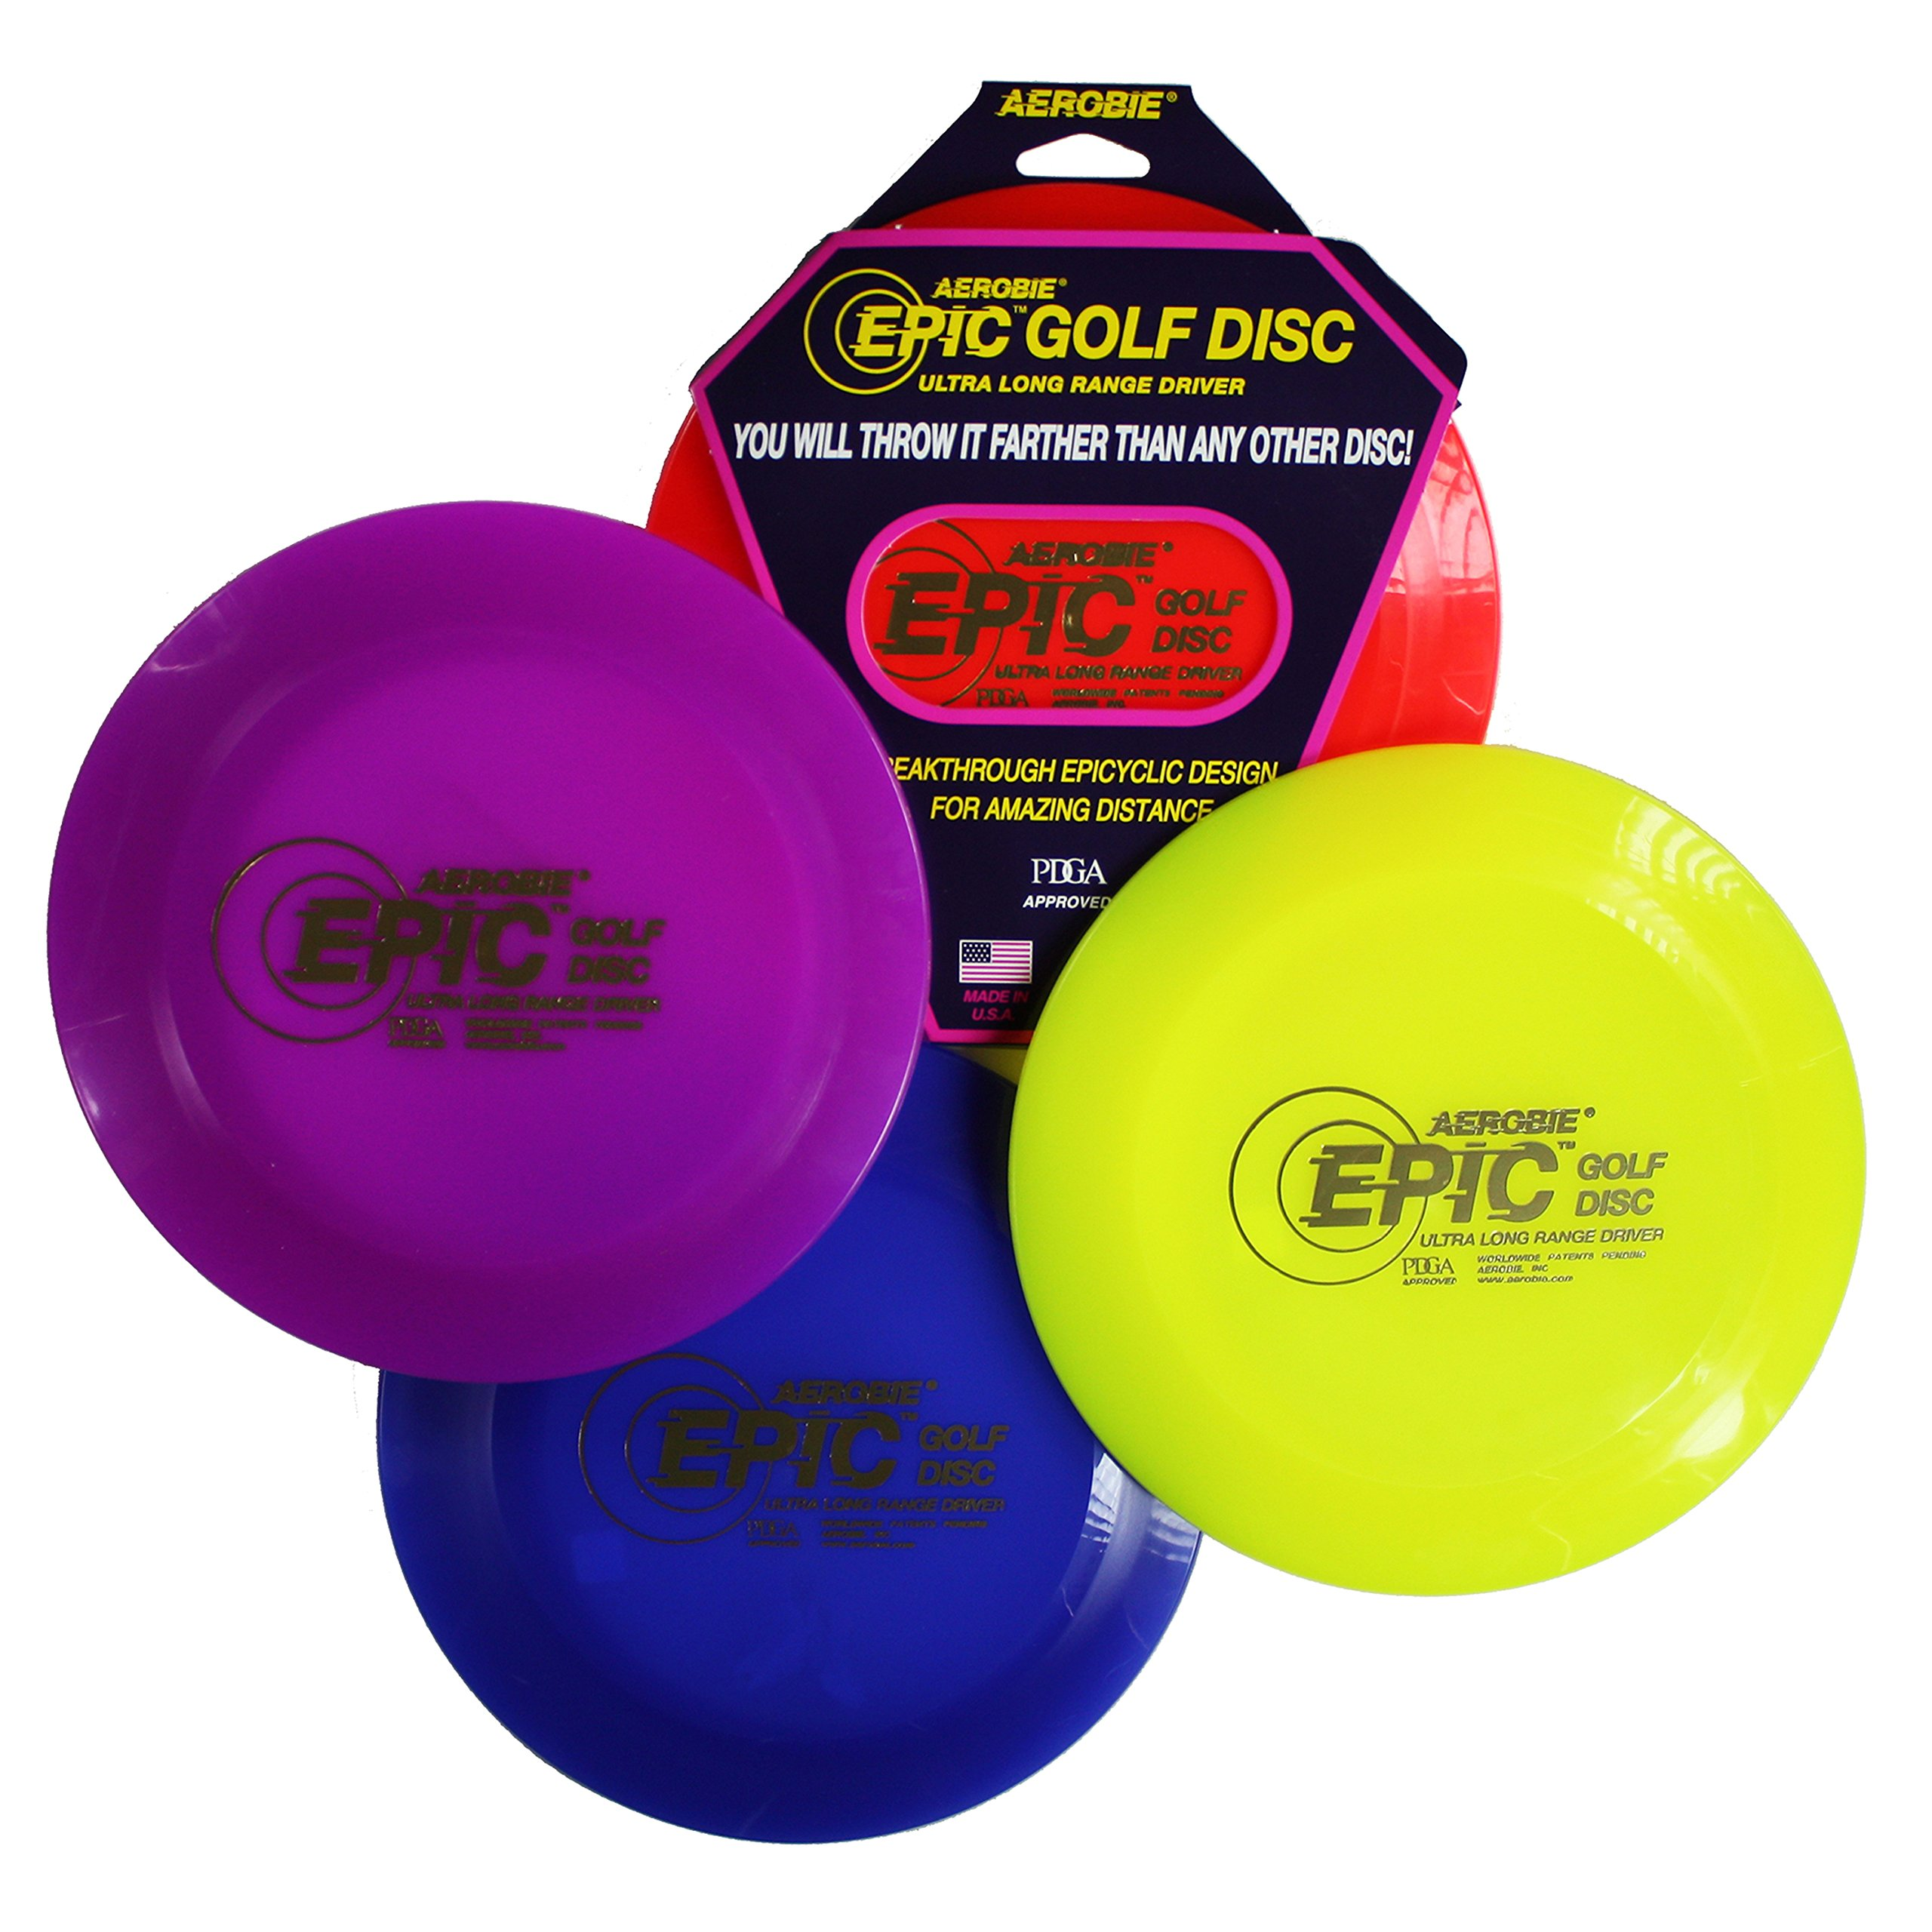 Aerobie Epic Golf Disc, Colors May Vary by Aerobie